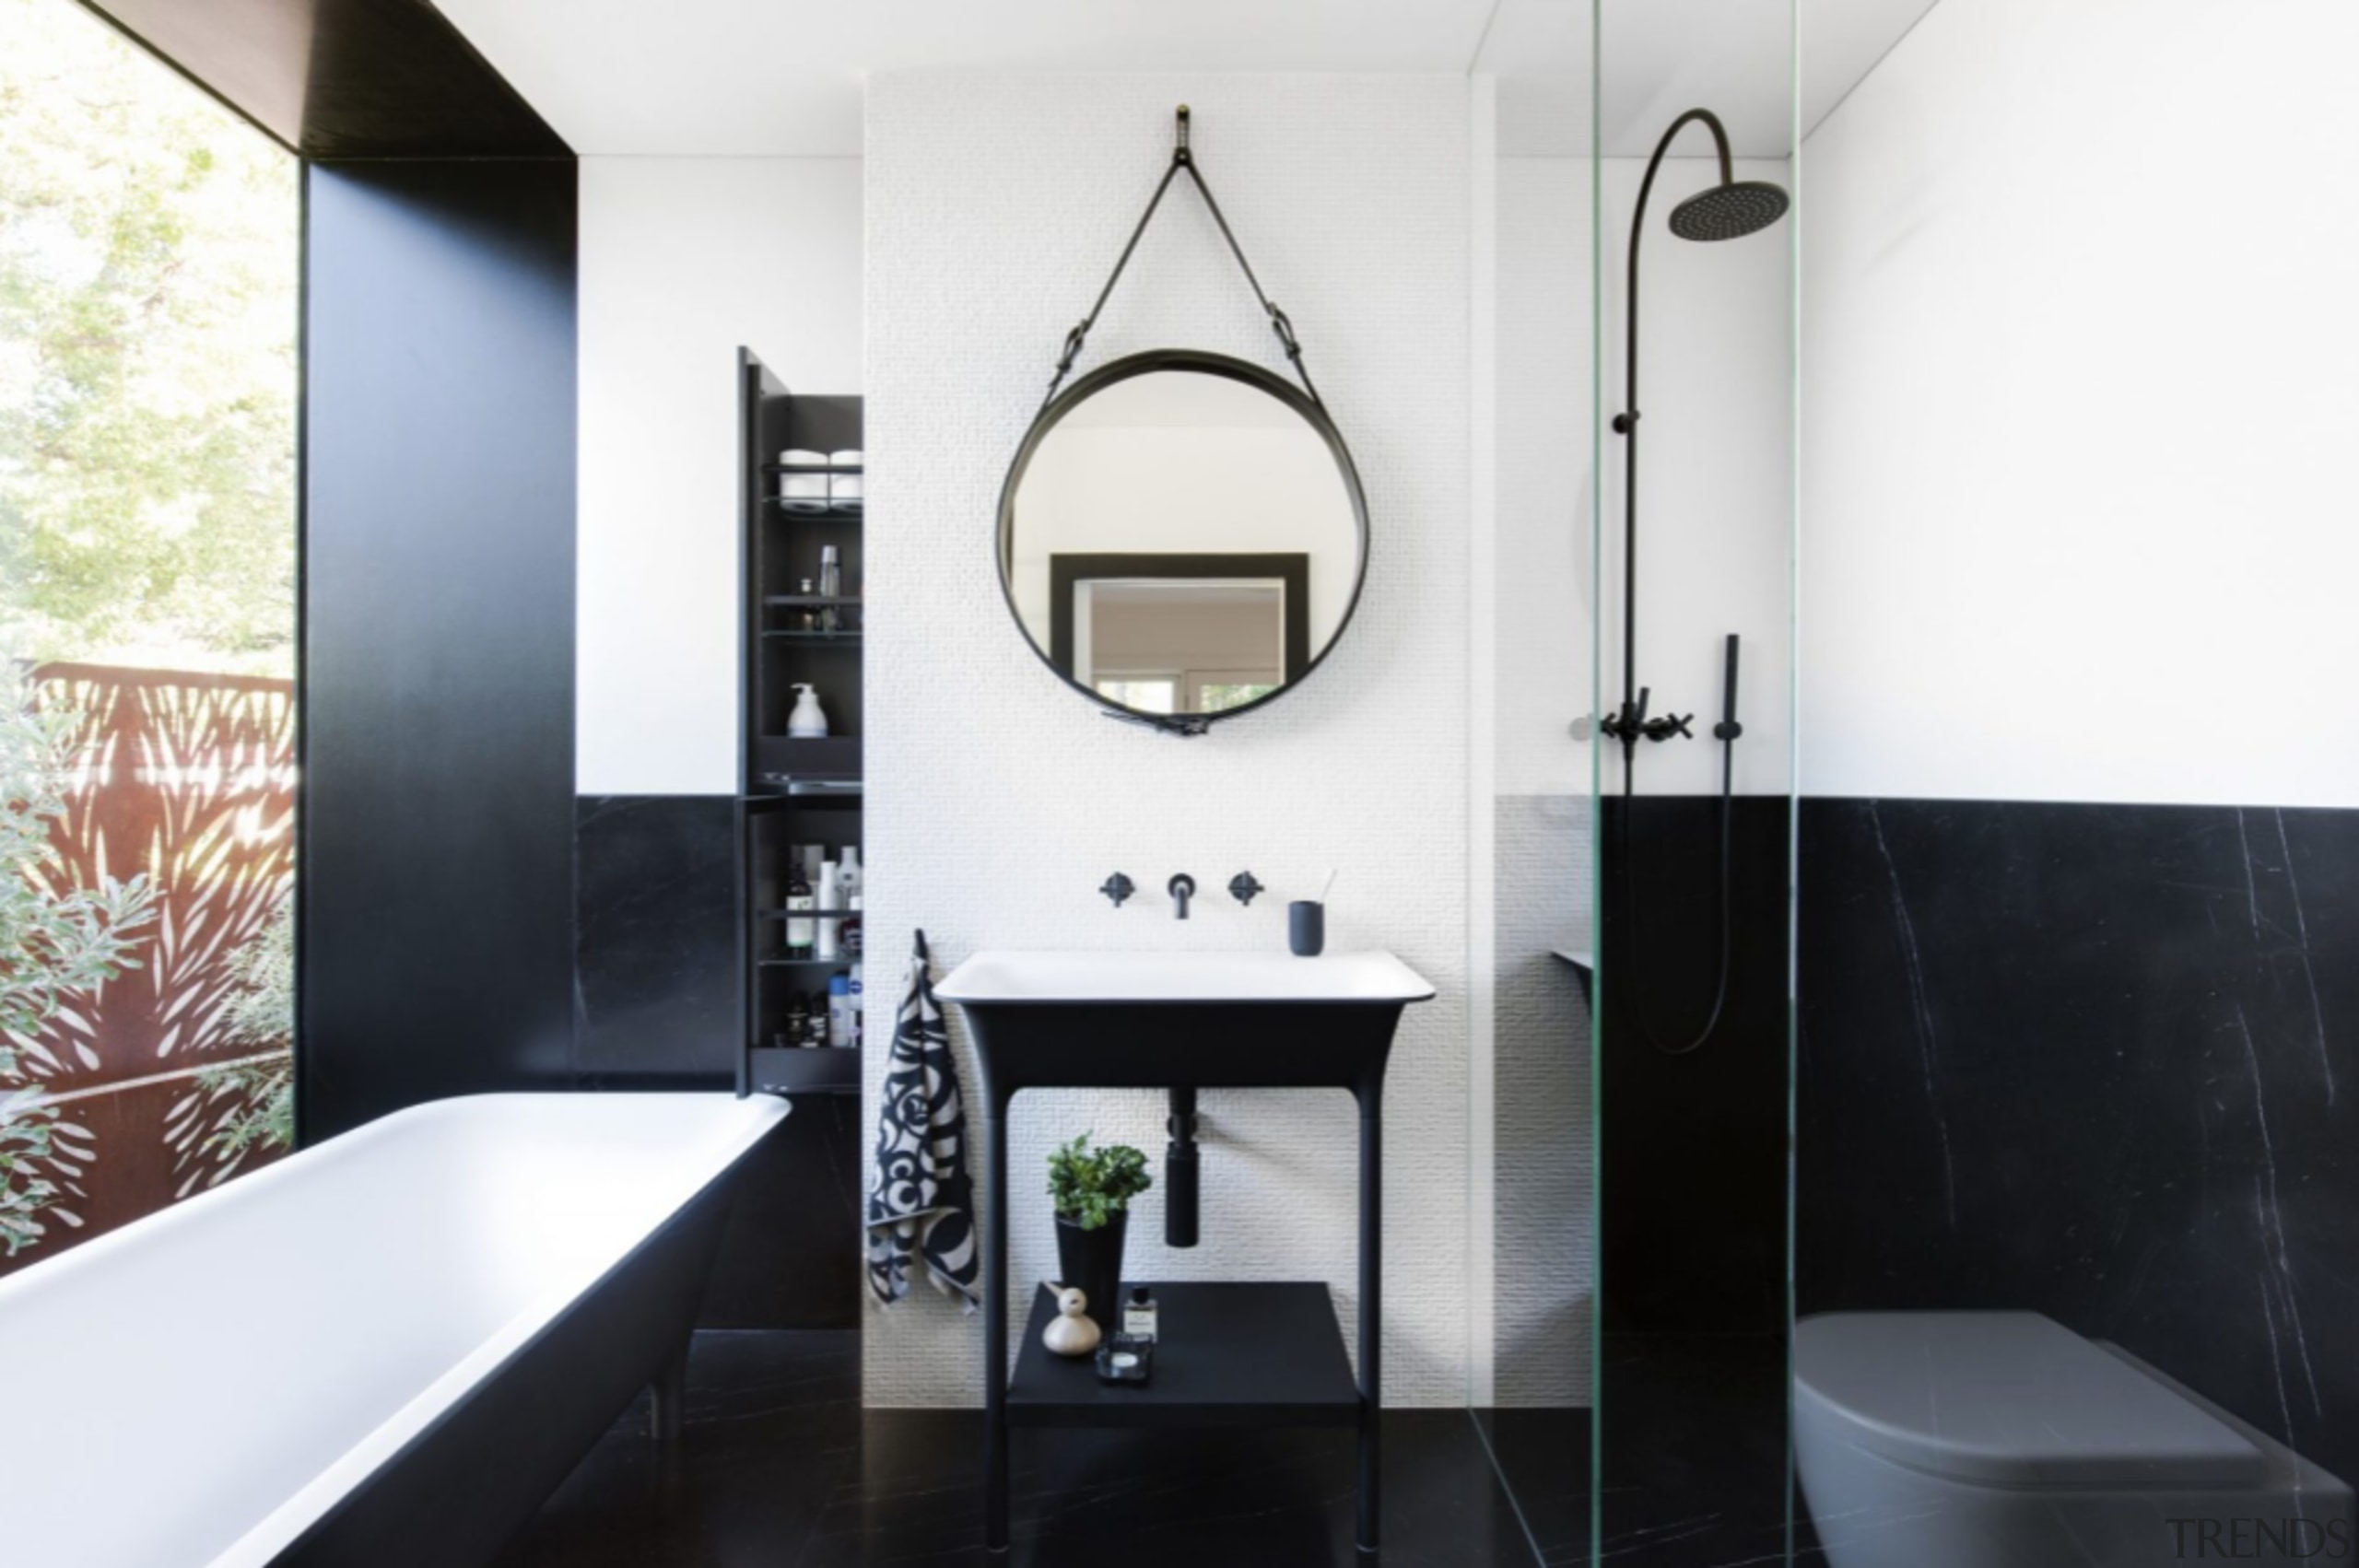 Read the full story architecture, bathroom, black, black-and-white, building, ceiling, design, floor, furniture, home, house, interior design, material property, plumbing fixture, property, real estate, room, sink, tap, tile, white, black